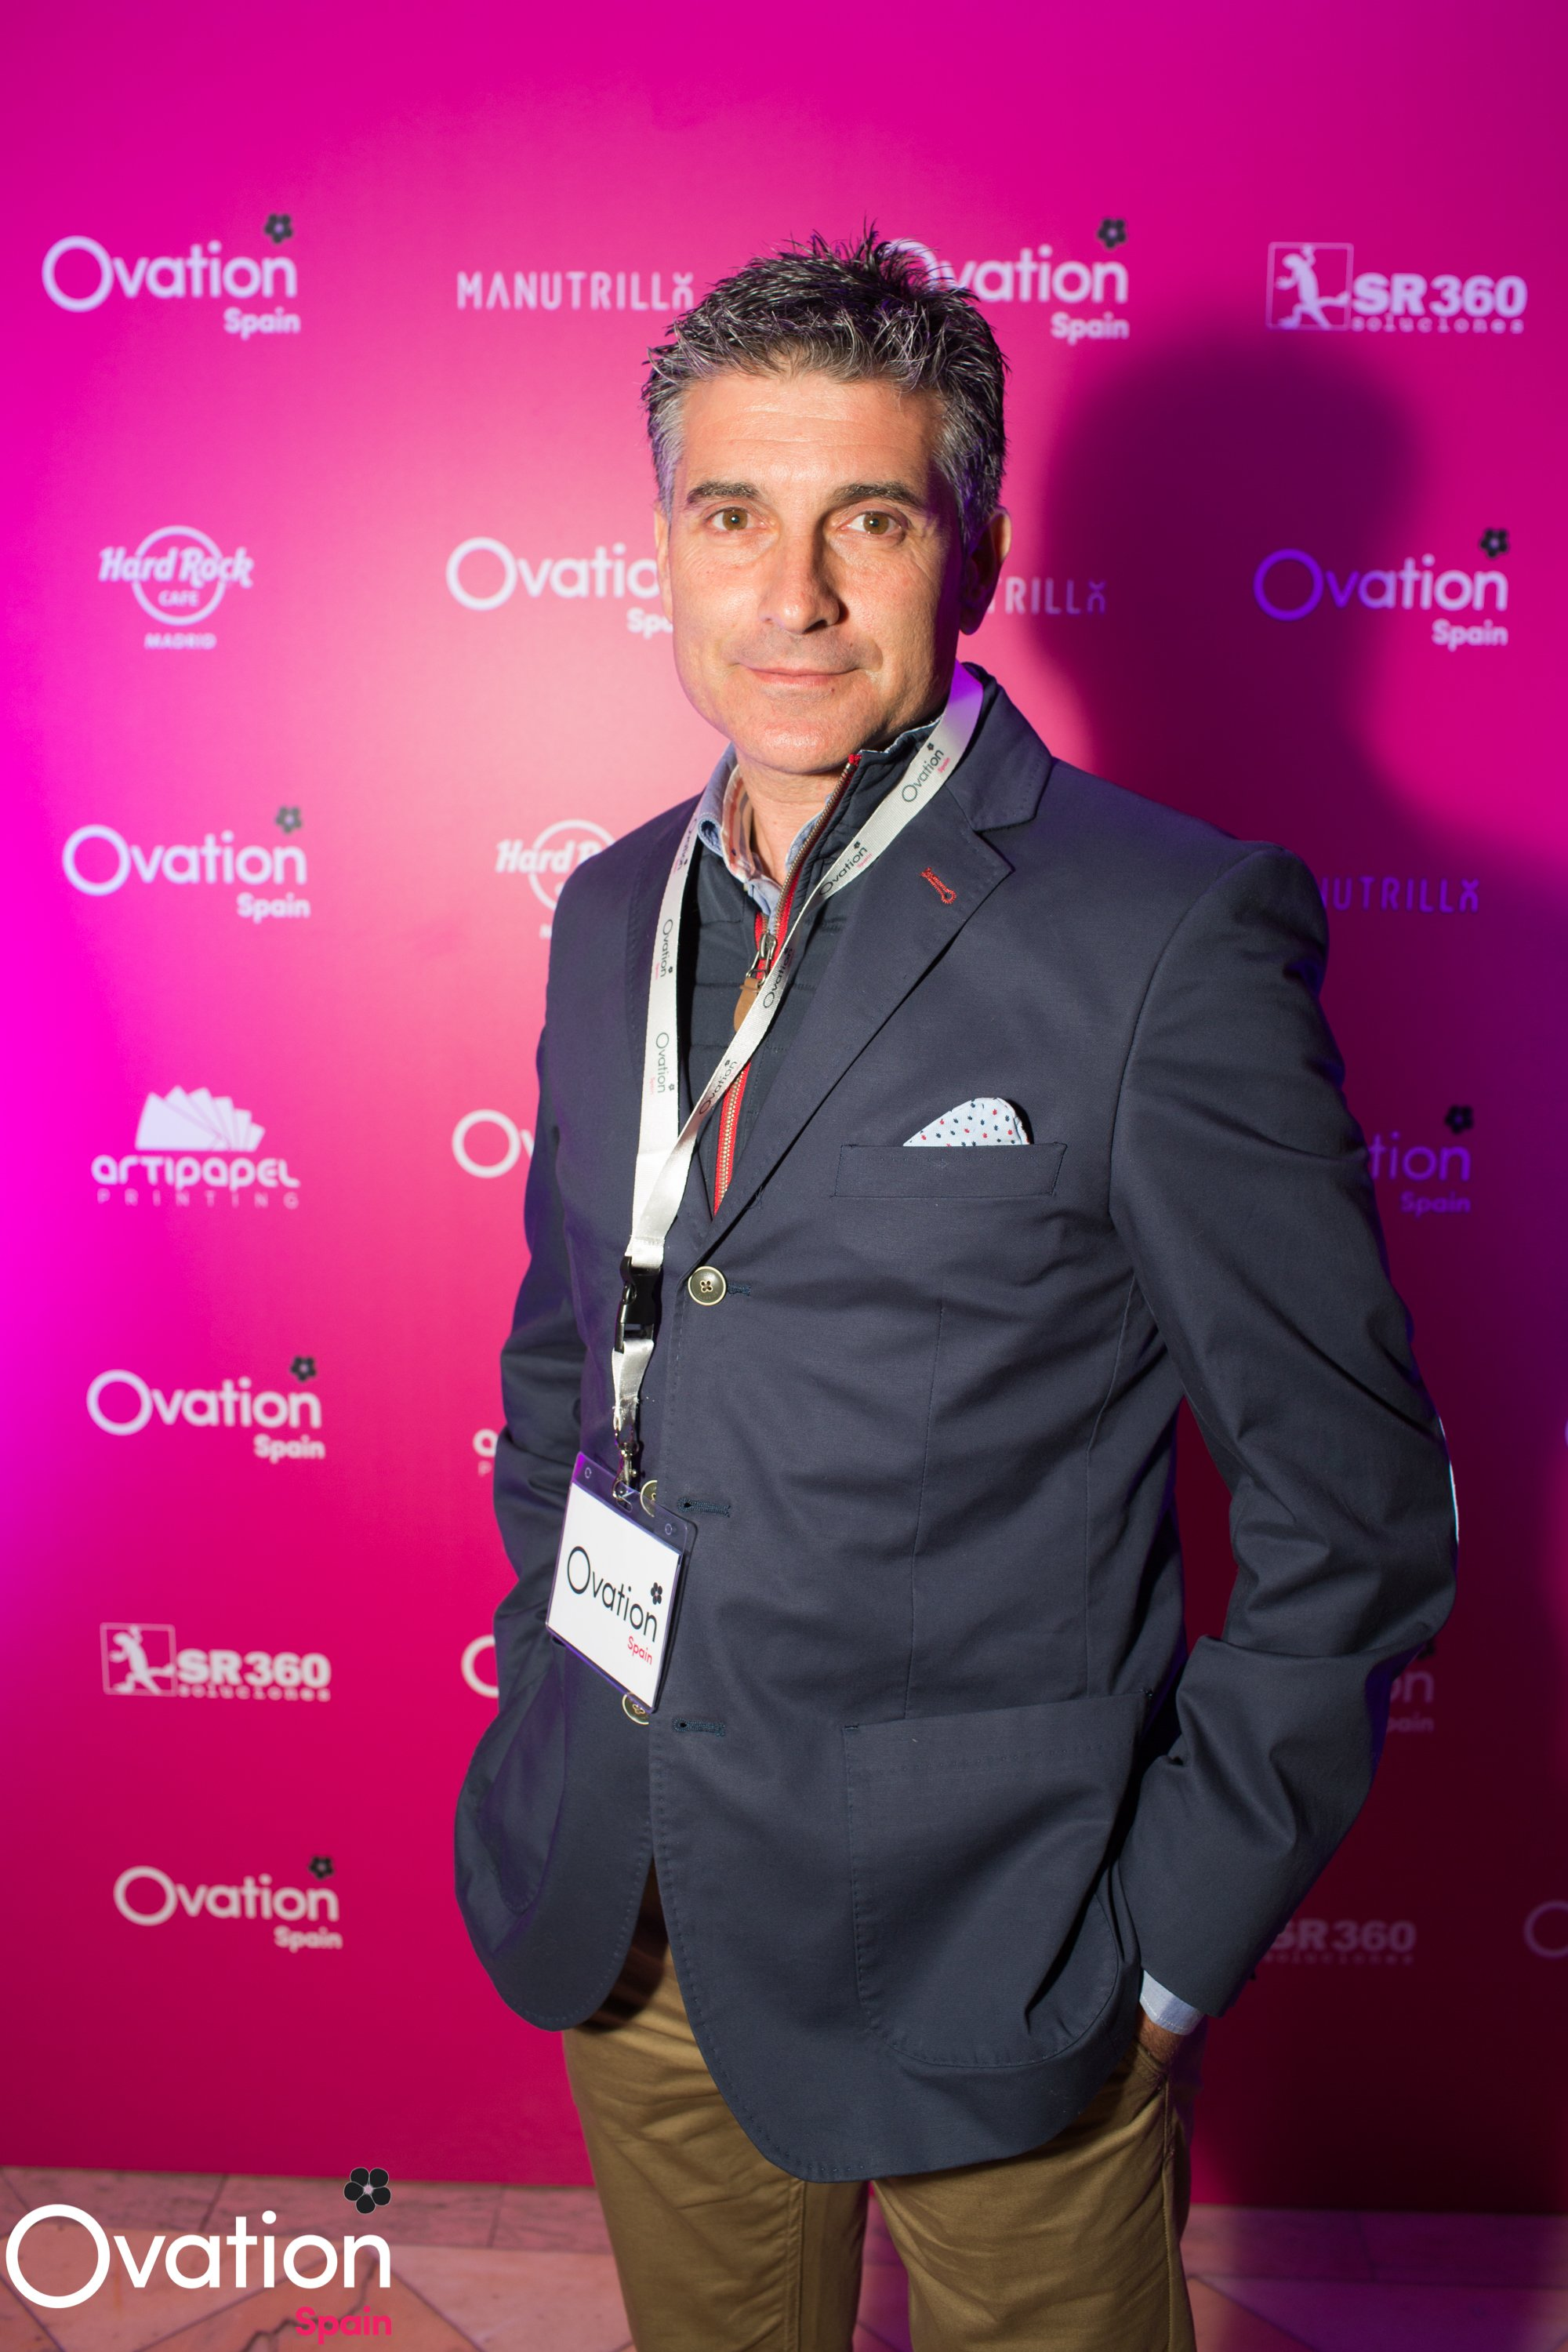 OVATION PARTNER PARTY manutrillo_022